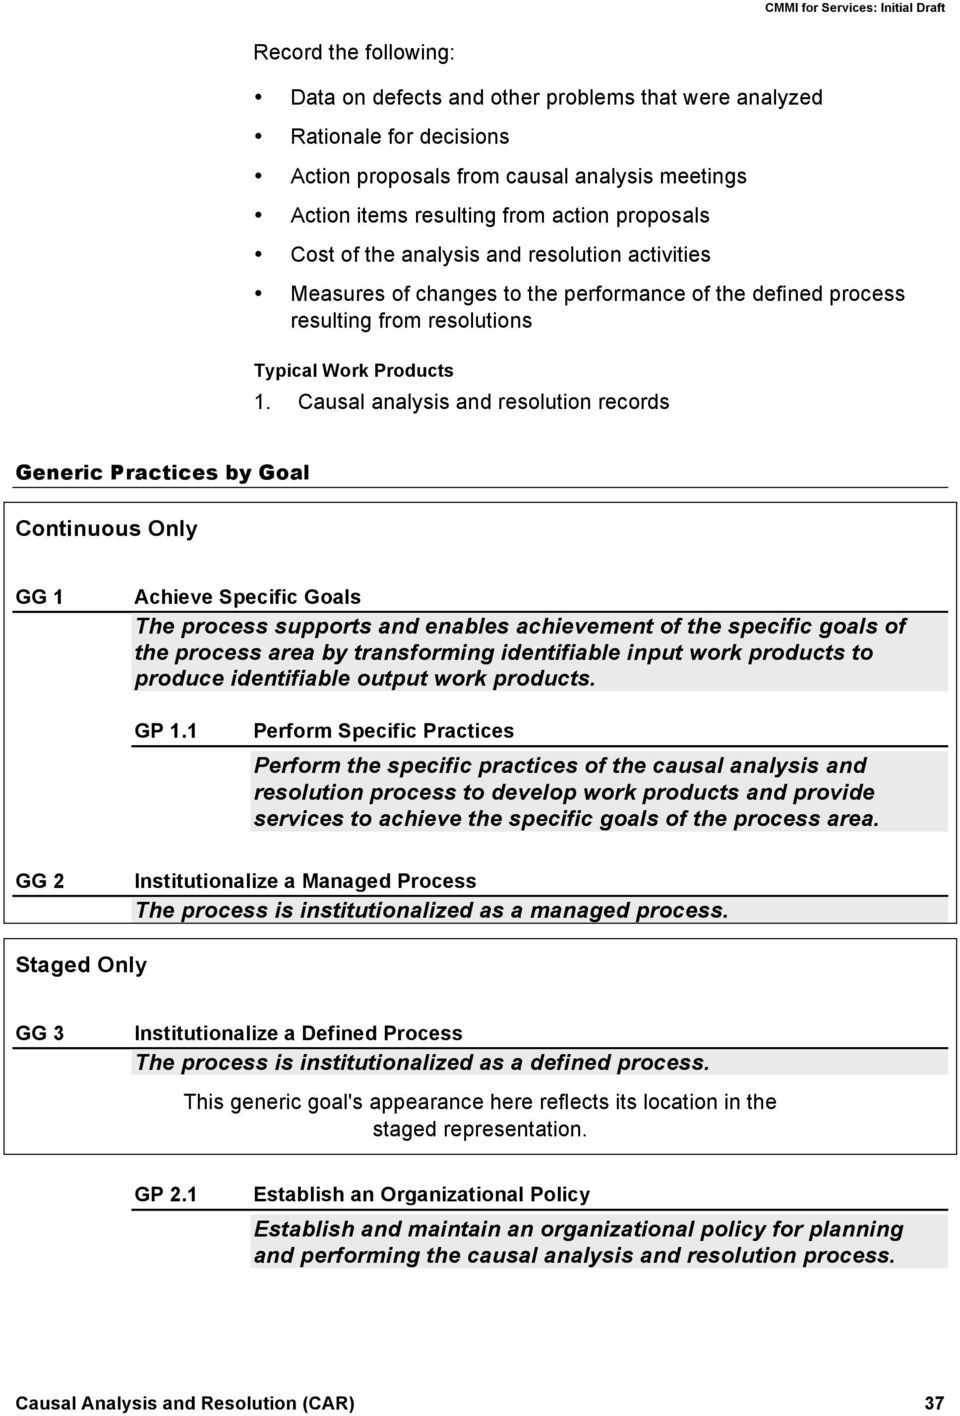 Causal analysis and resolution records Generic Practices by Goal Continuous Only GG 1 Achieve Specific Goals The process supports and enables achievement of the specific goals of the process area by